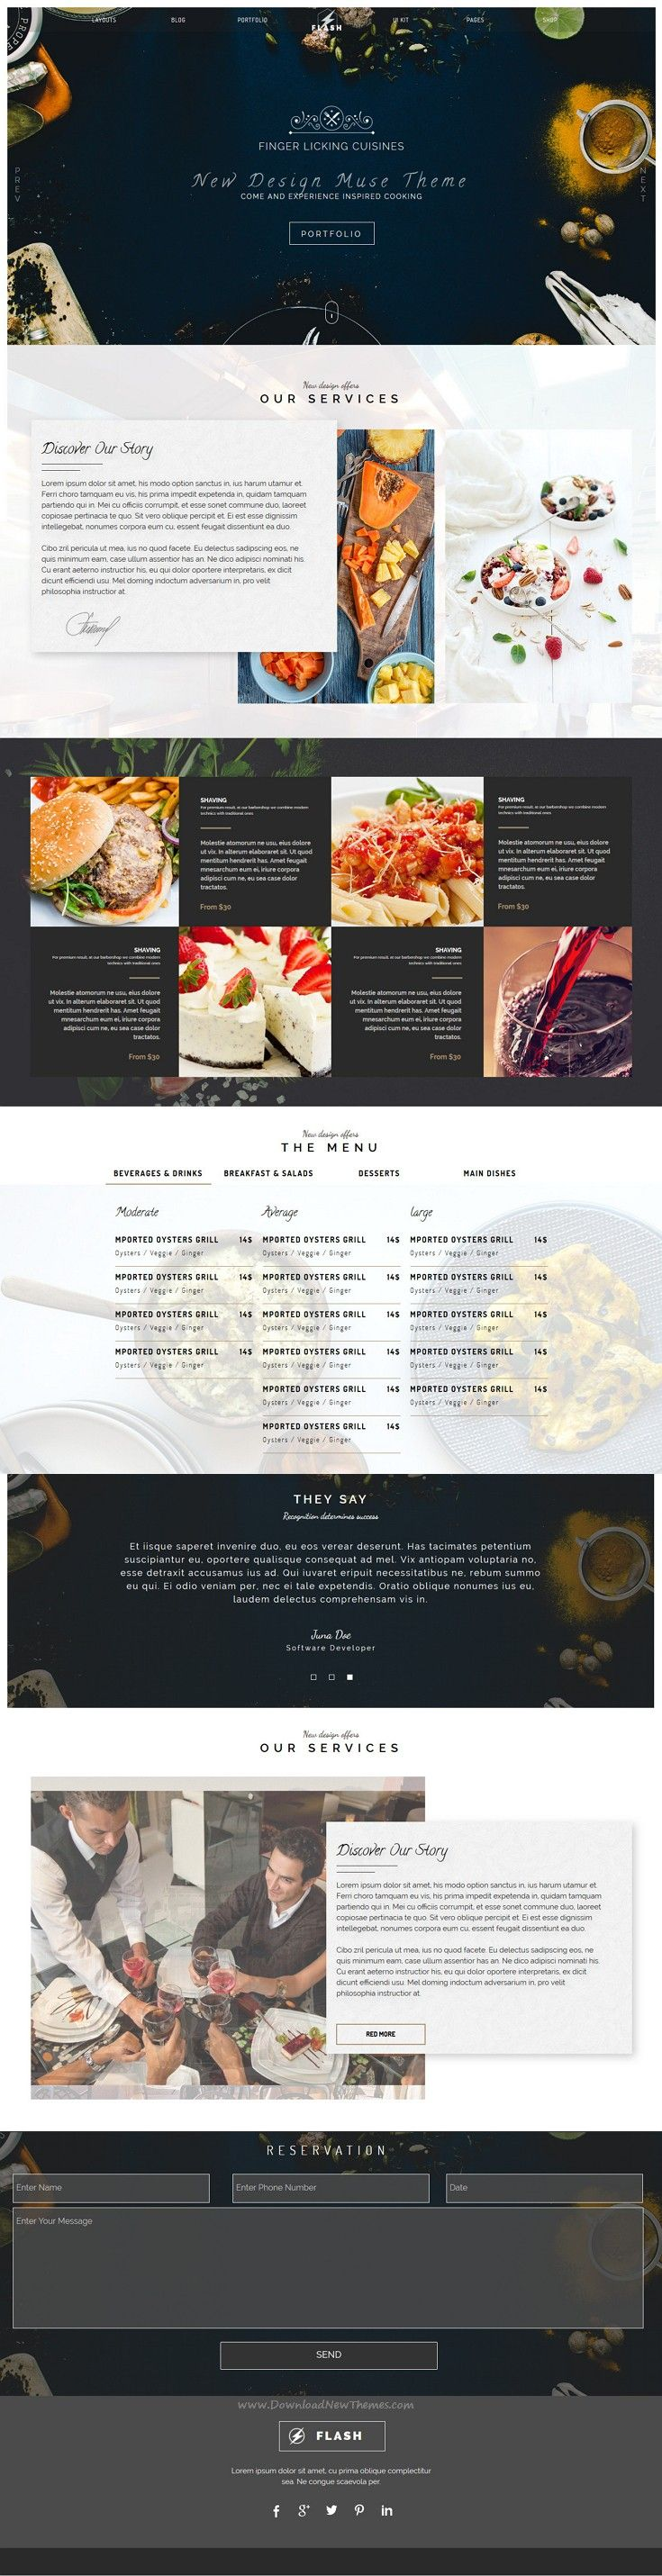 27 besten Web design templates ADOBE MUSE Bilder auf Pinterest ...